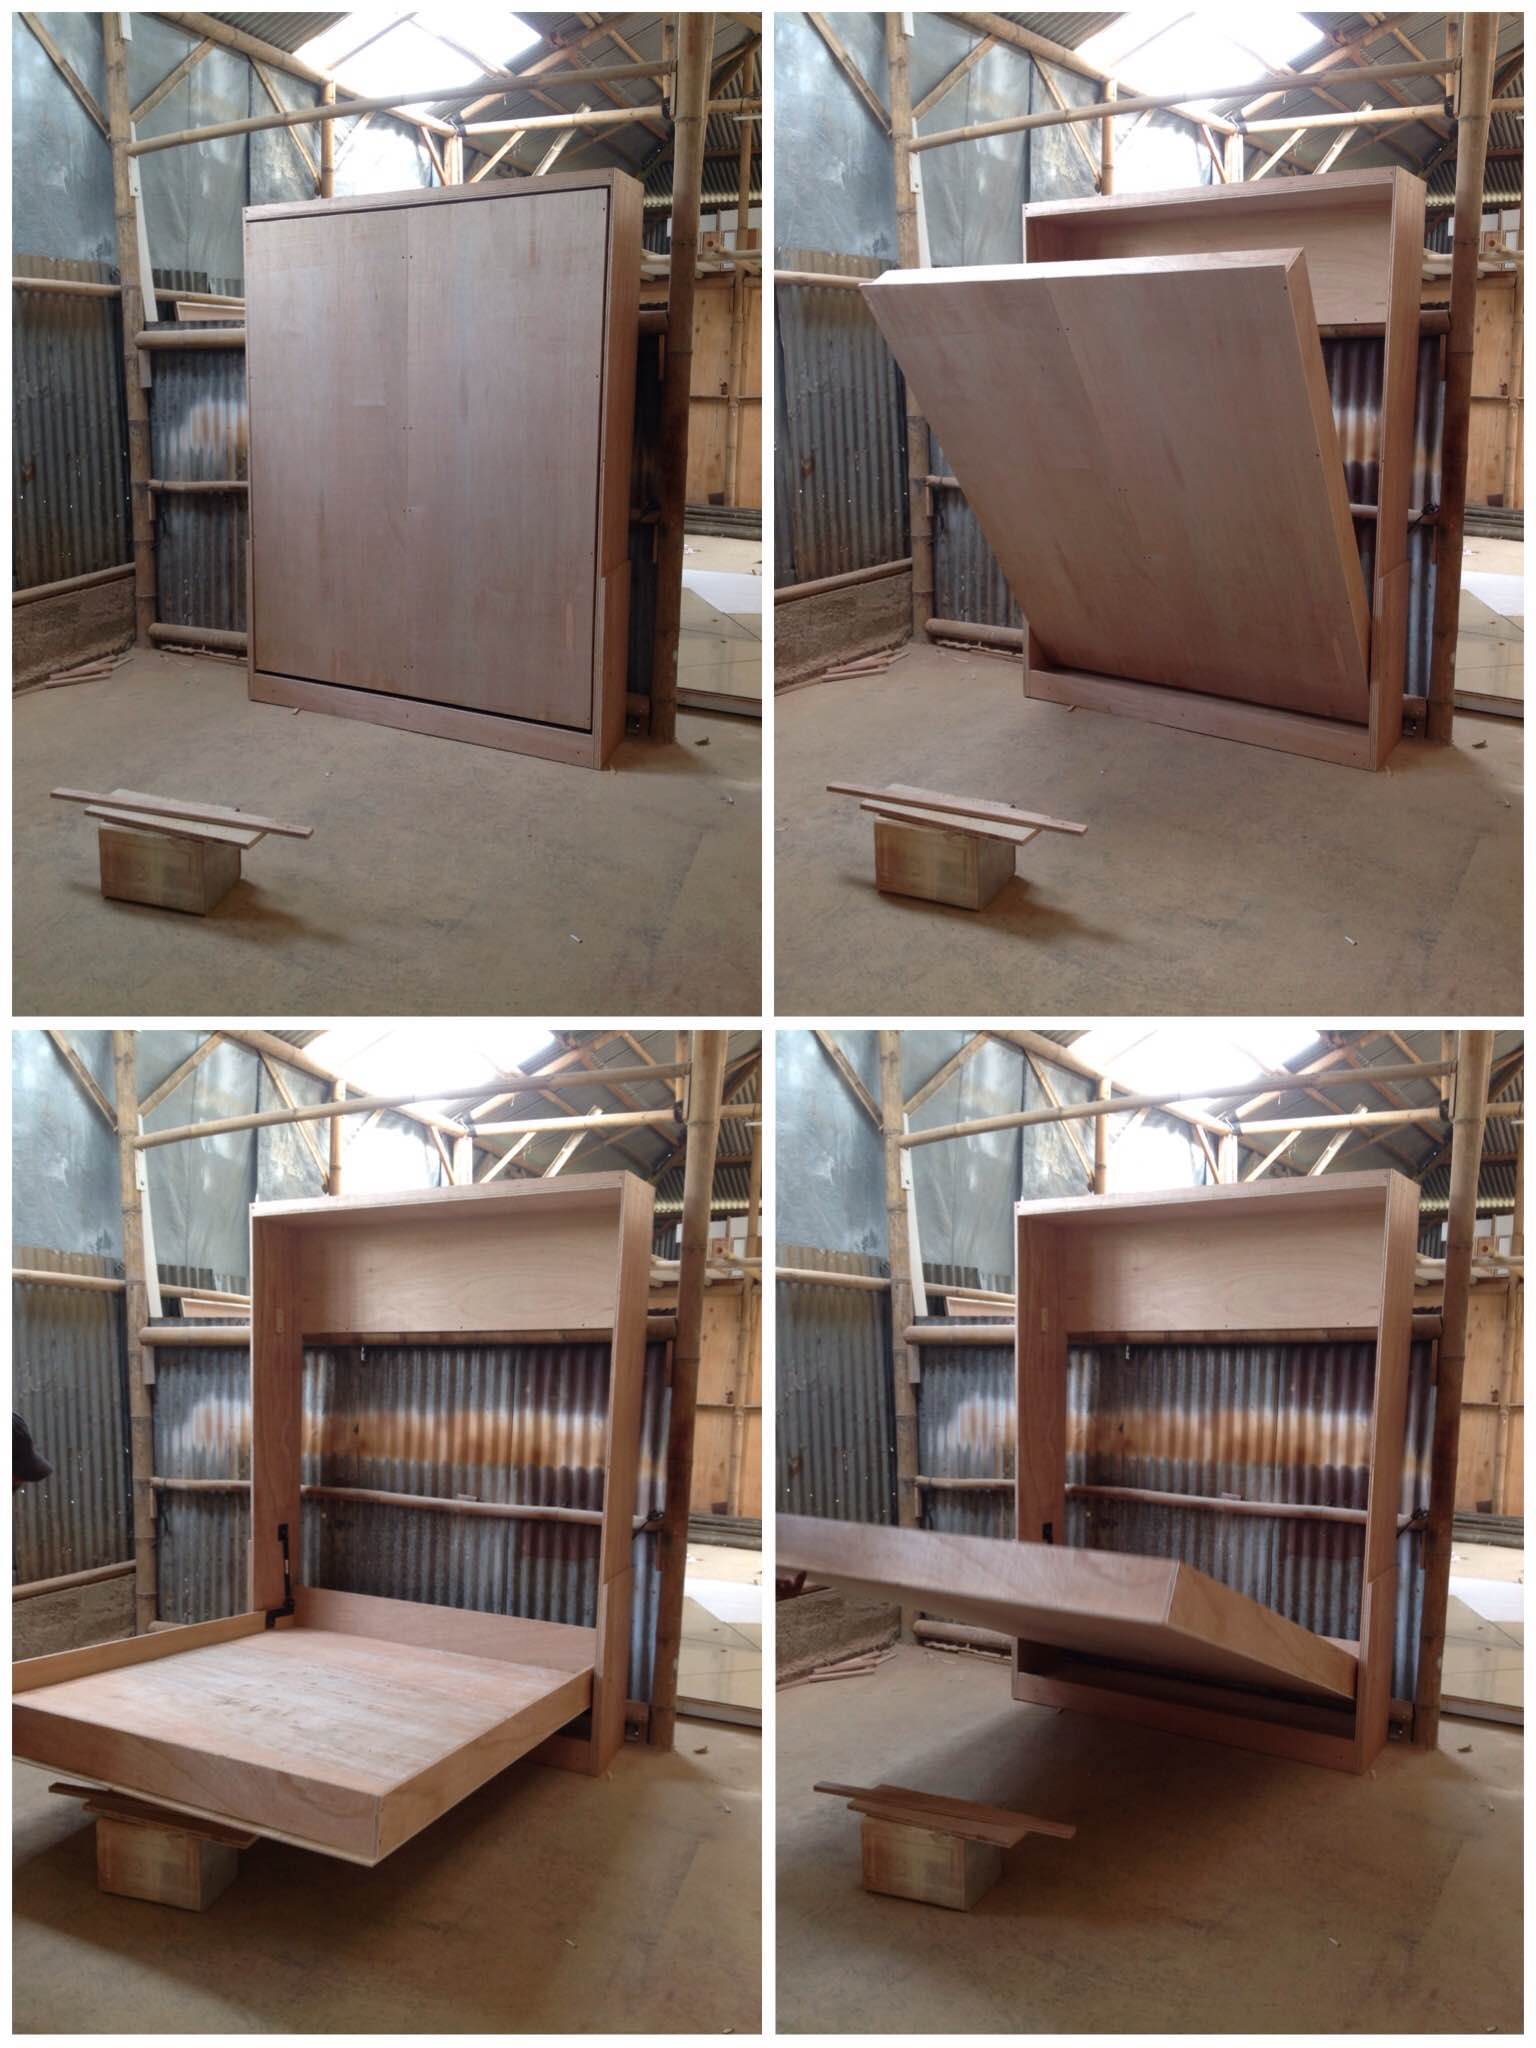 Wall bed Murphy bed Jakarta Indonesia